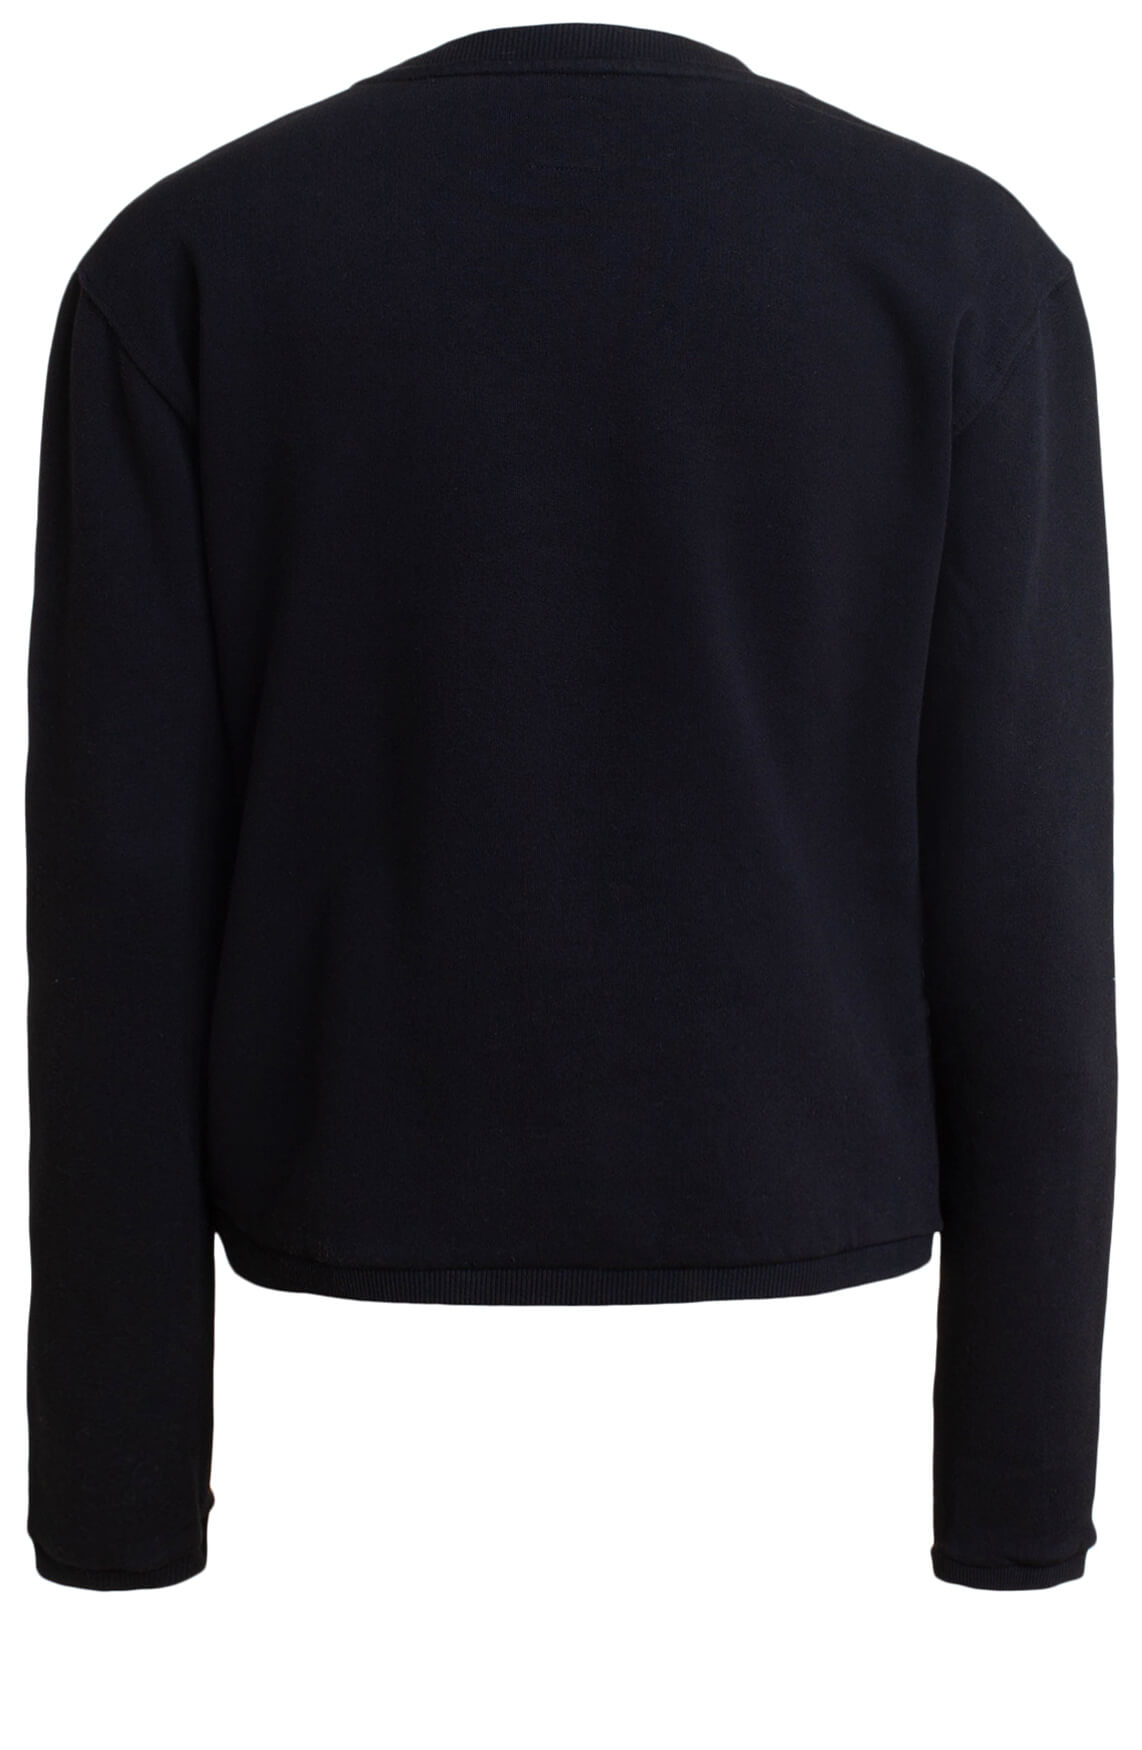 Lois Dames Lois sweater zwart